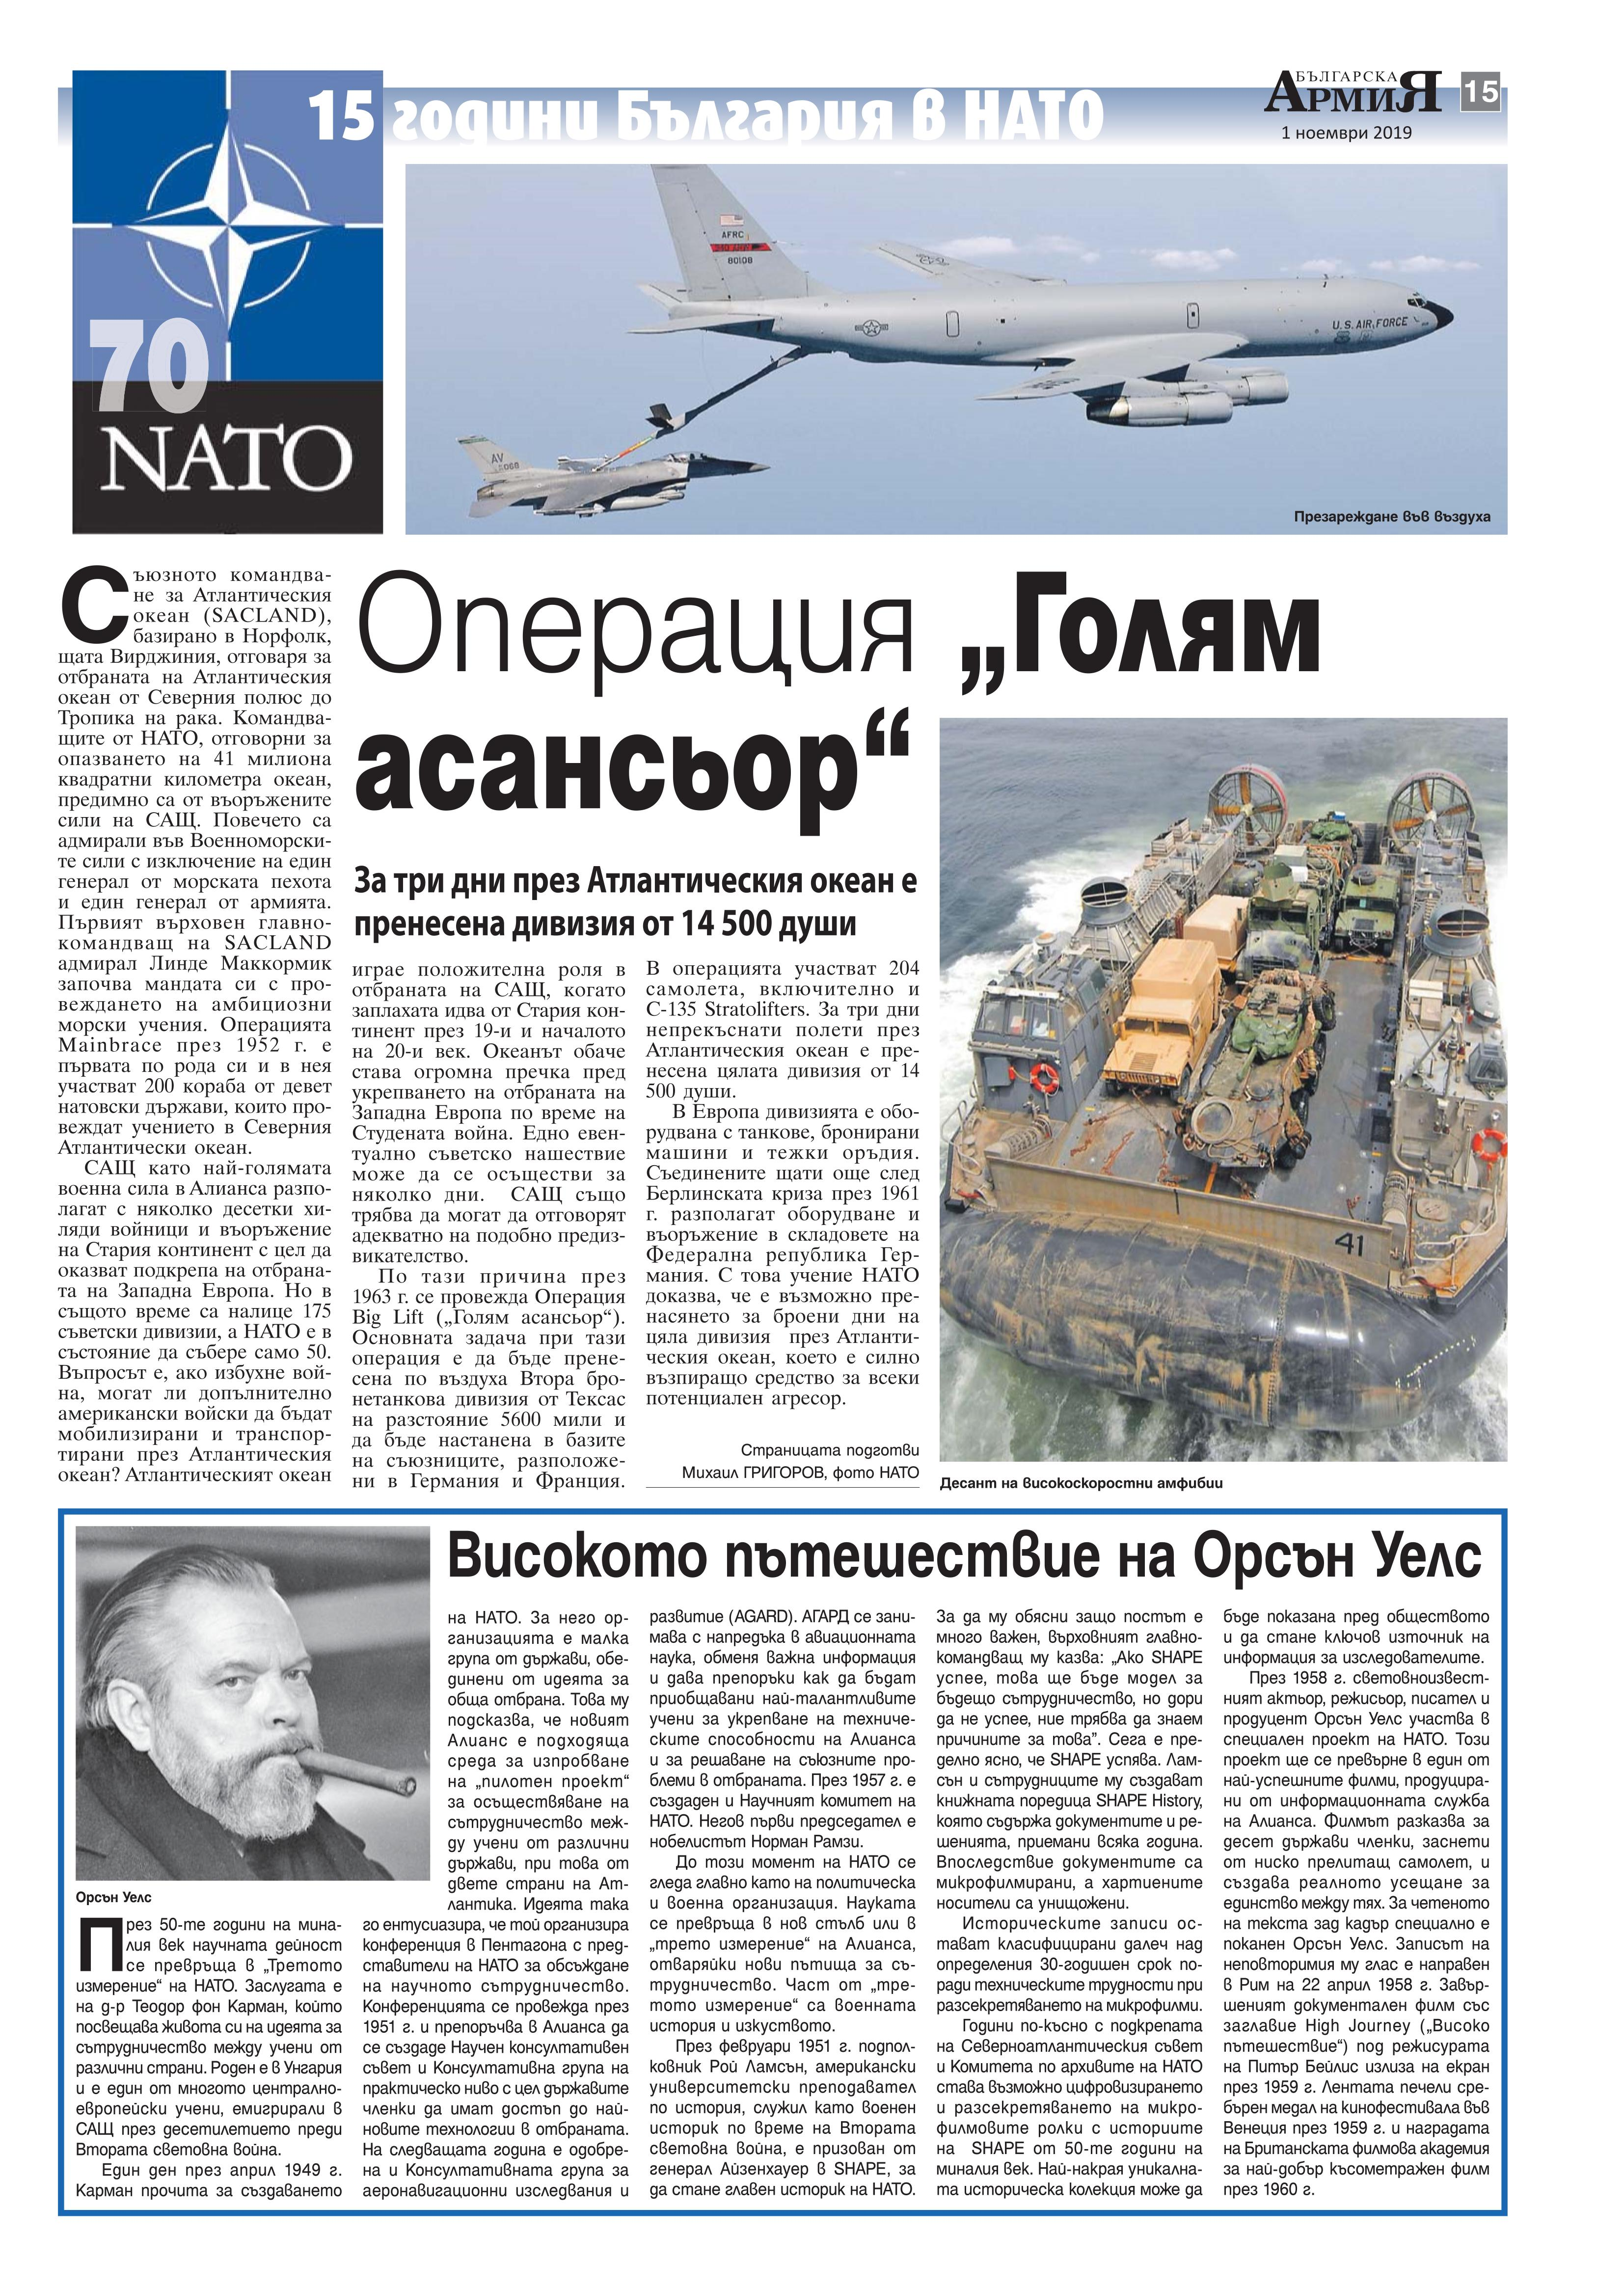 https://www.armymedia.bg/wp-content/uploads/2015/06/15.page1_-114.jpg